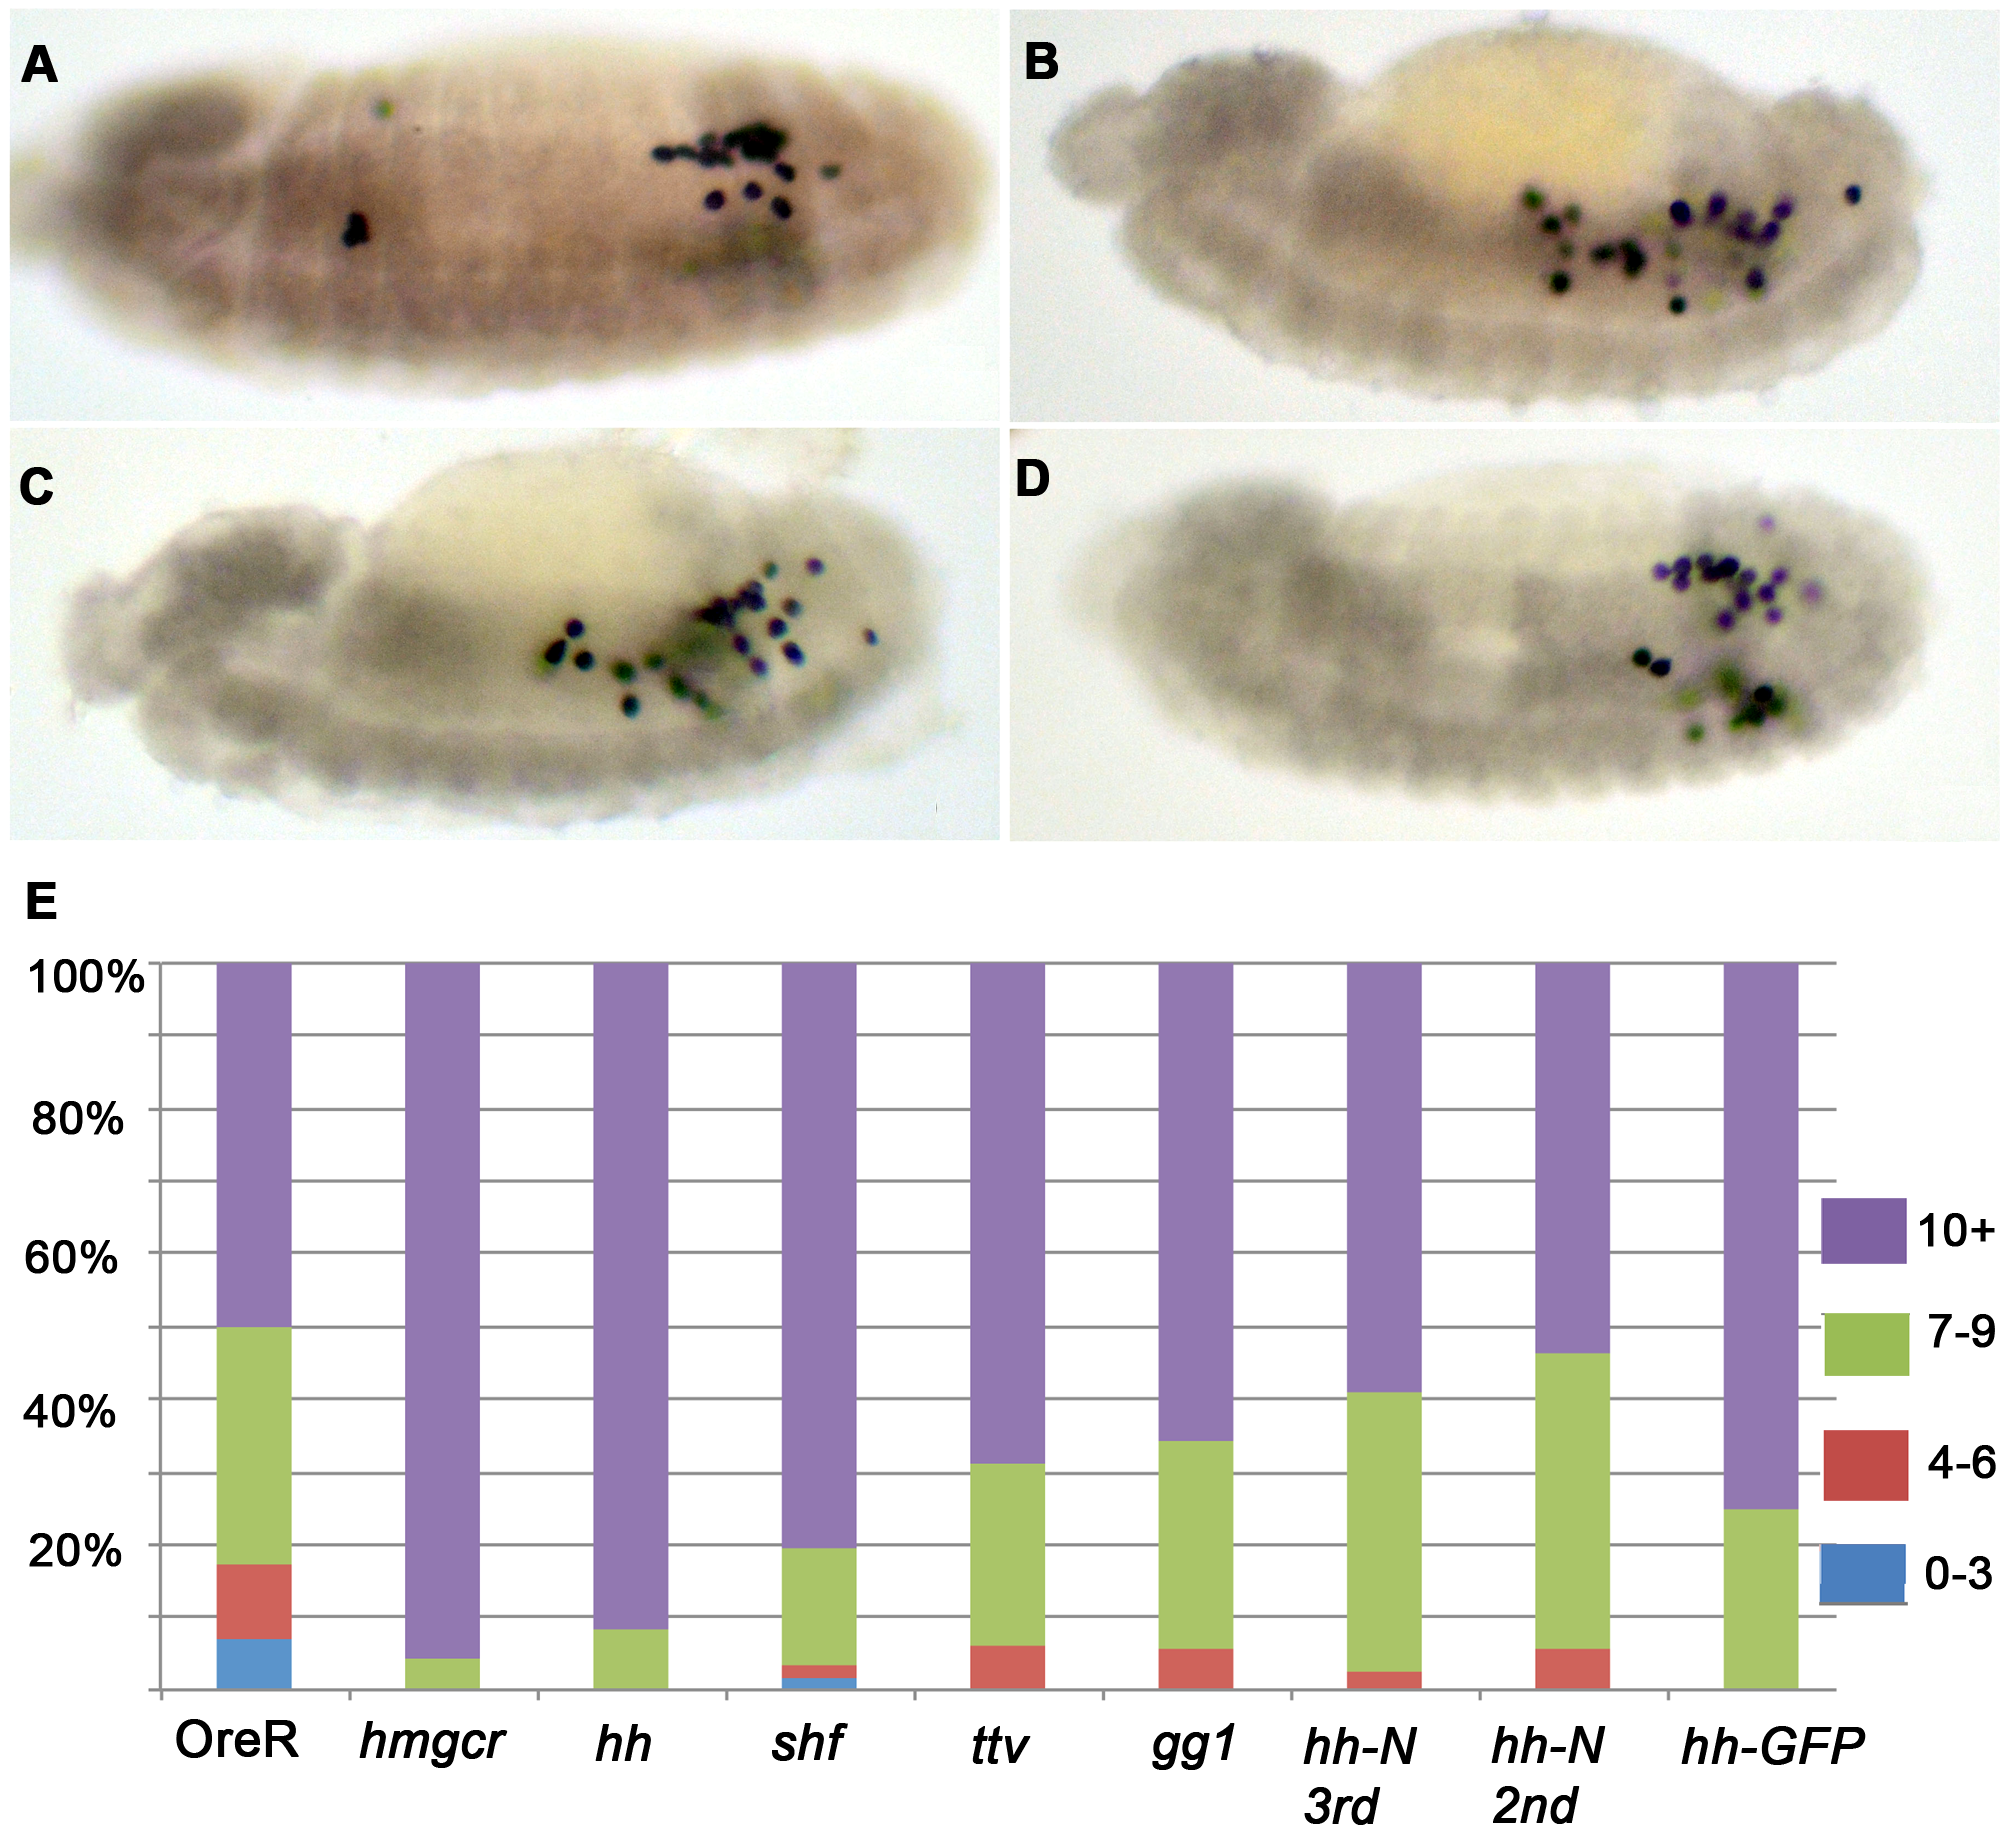 Enhancement of the <i>elav</i>-<i>GAL4 UAS</i>-<i>hmgcr</i> PGC migration defects by co-expression of <i>hh</i> pathway genes.